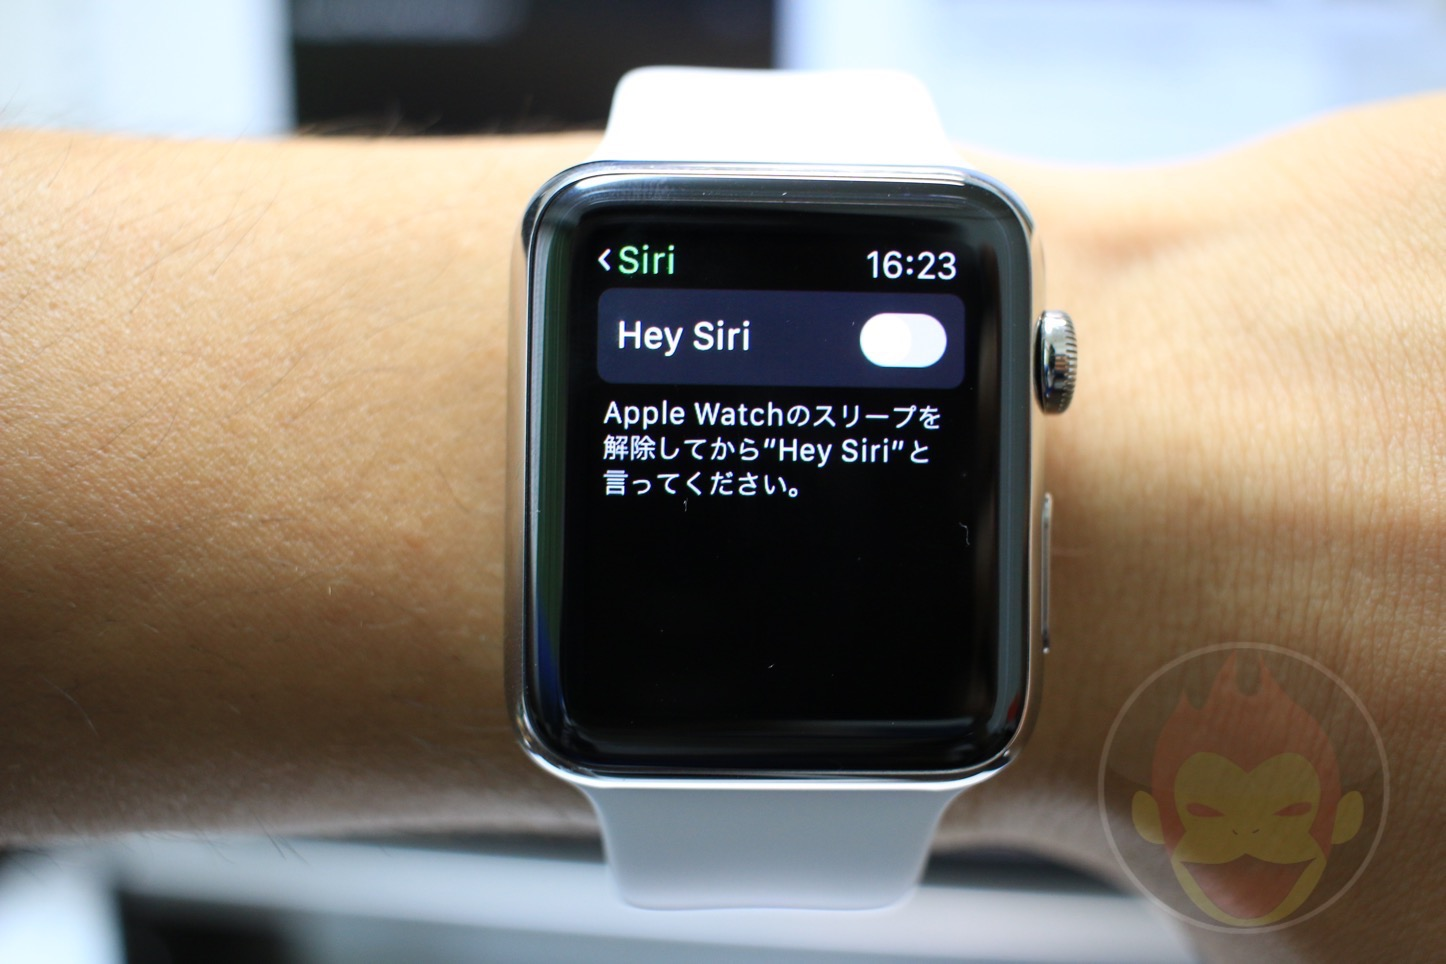 Apple-Watch-Getting-Most-Out-Of-Battery-0013.JPG